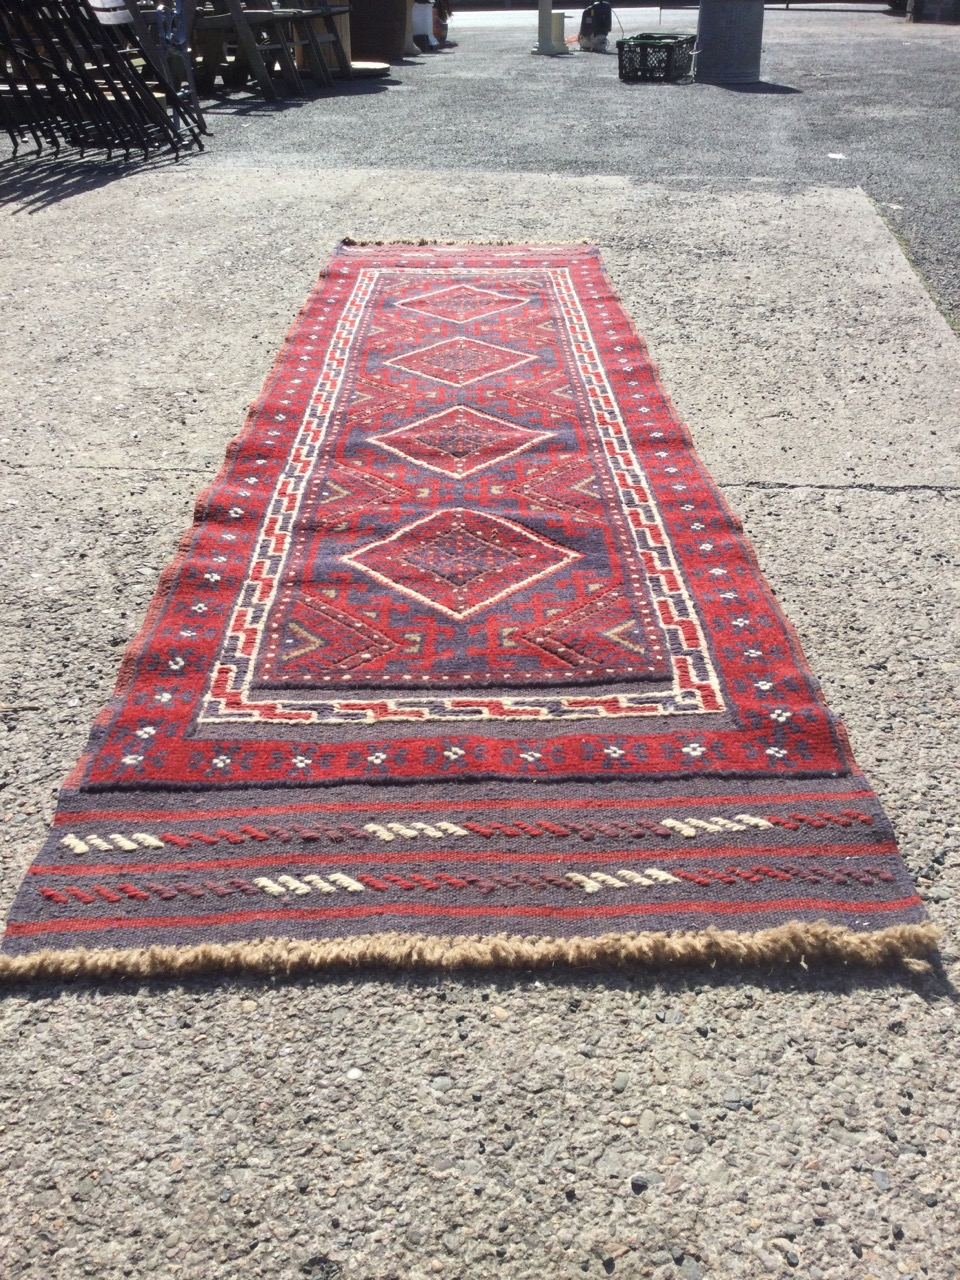 A Turkish runner woven with red field of four diamond shaped medallions with blue hooked borders, - Image 2 of 3